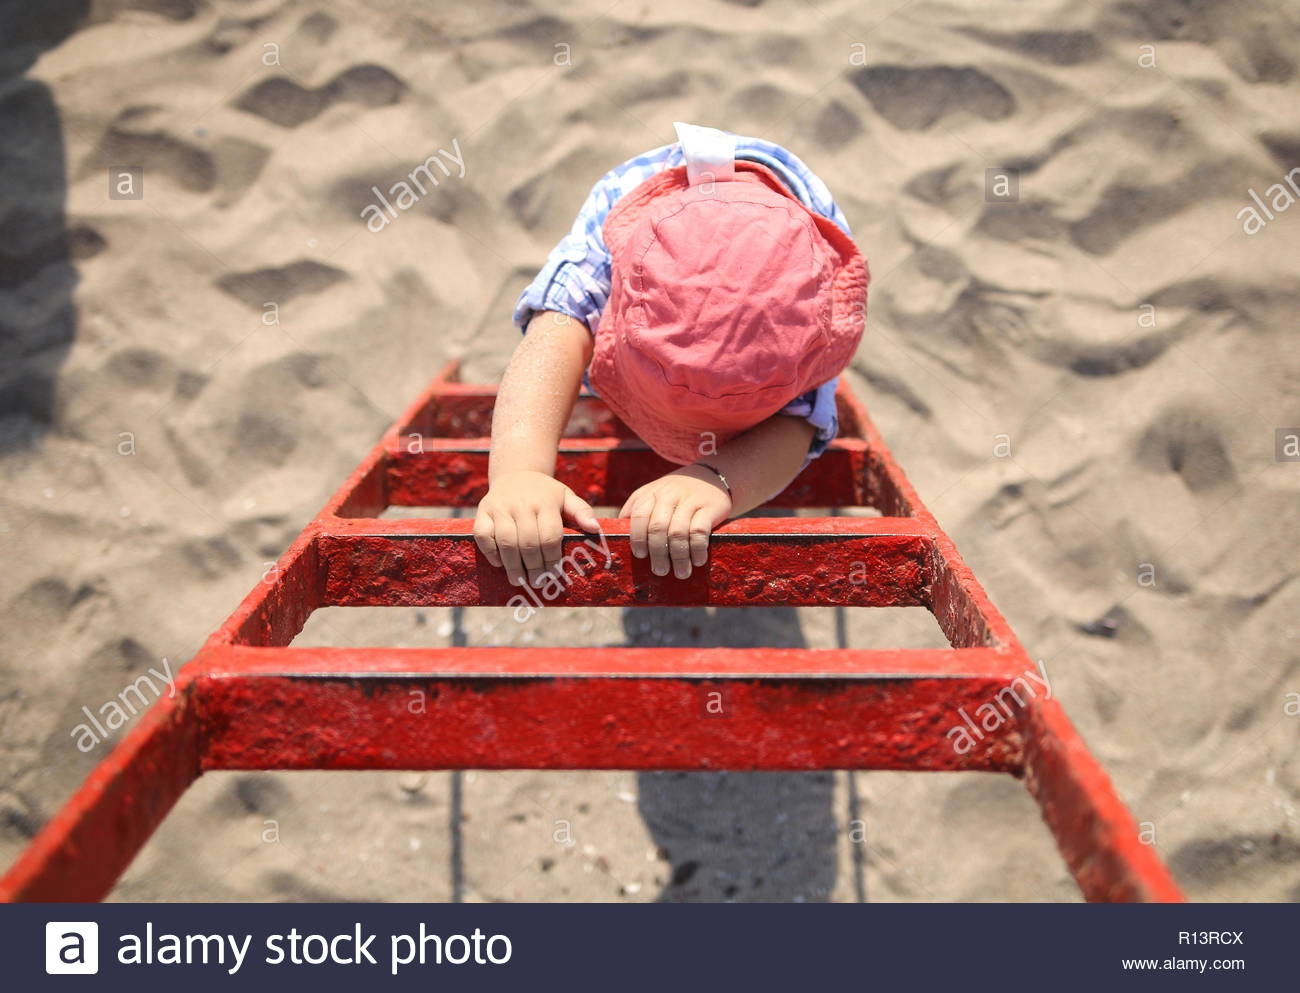 High angle view of a child playing in the sand at the beach - Stock Image